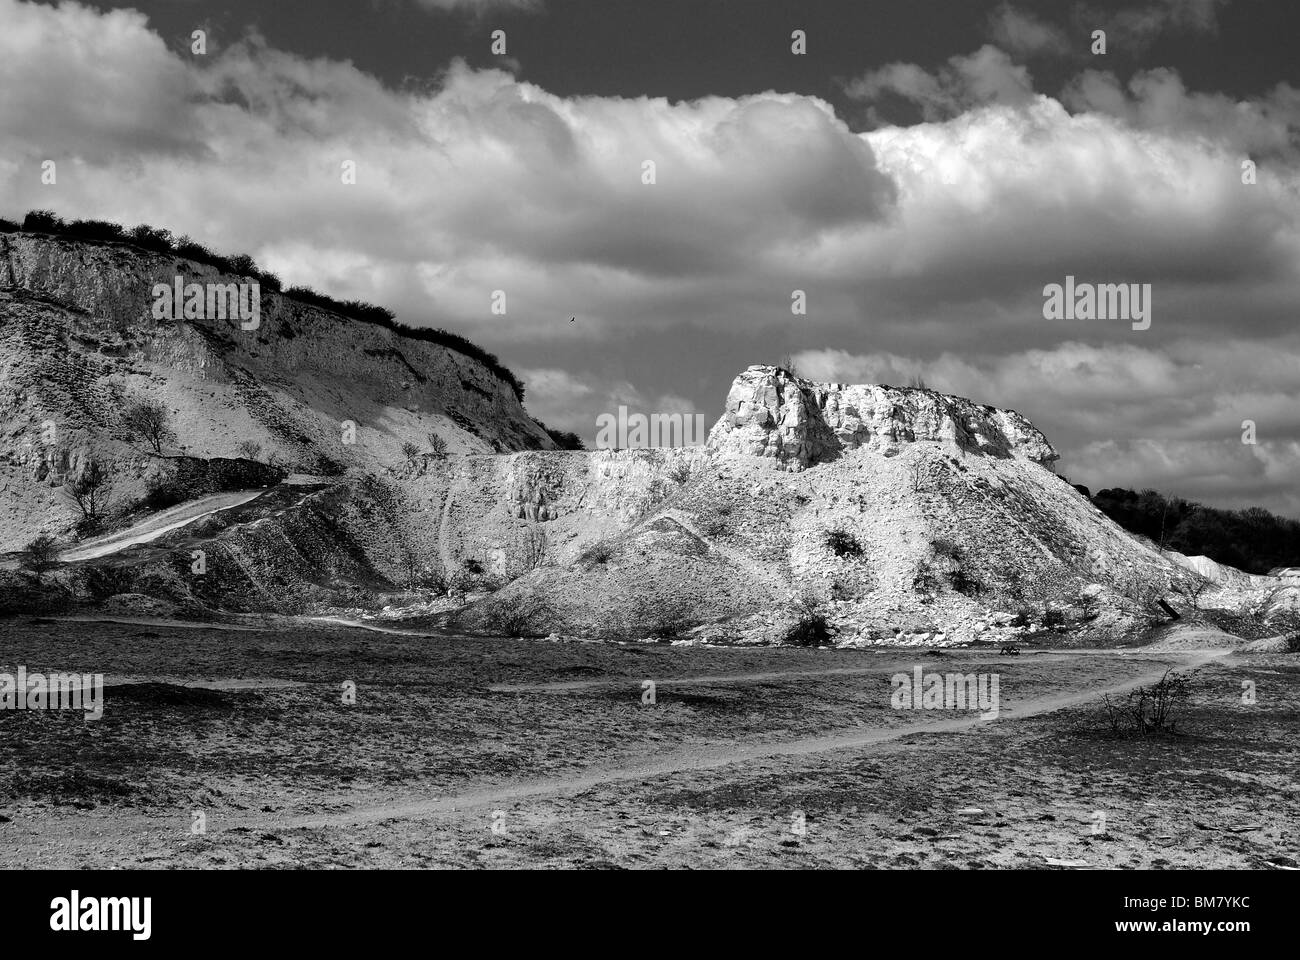 Abandoned Limestone Quarry in Bedfordshire - Stock Image